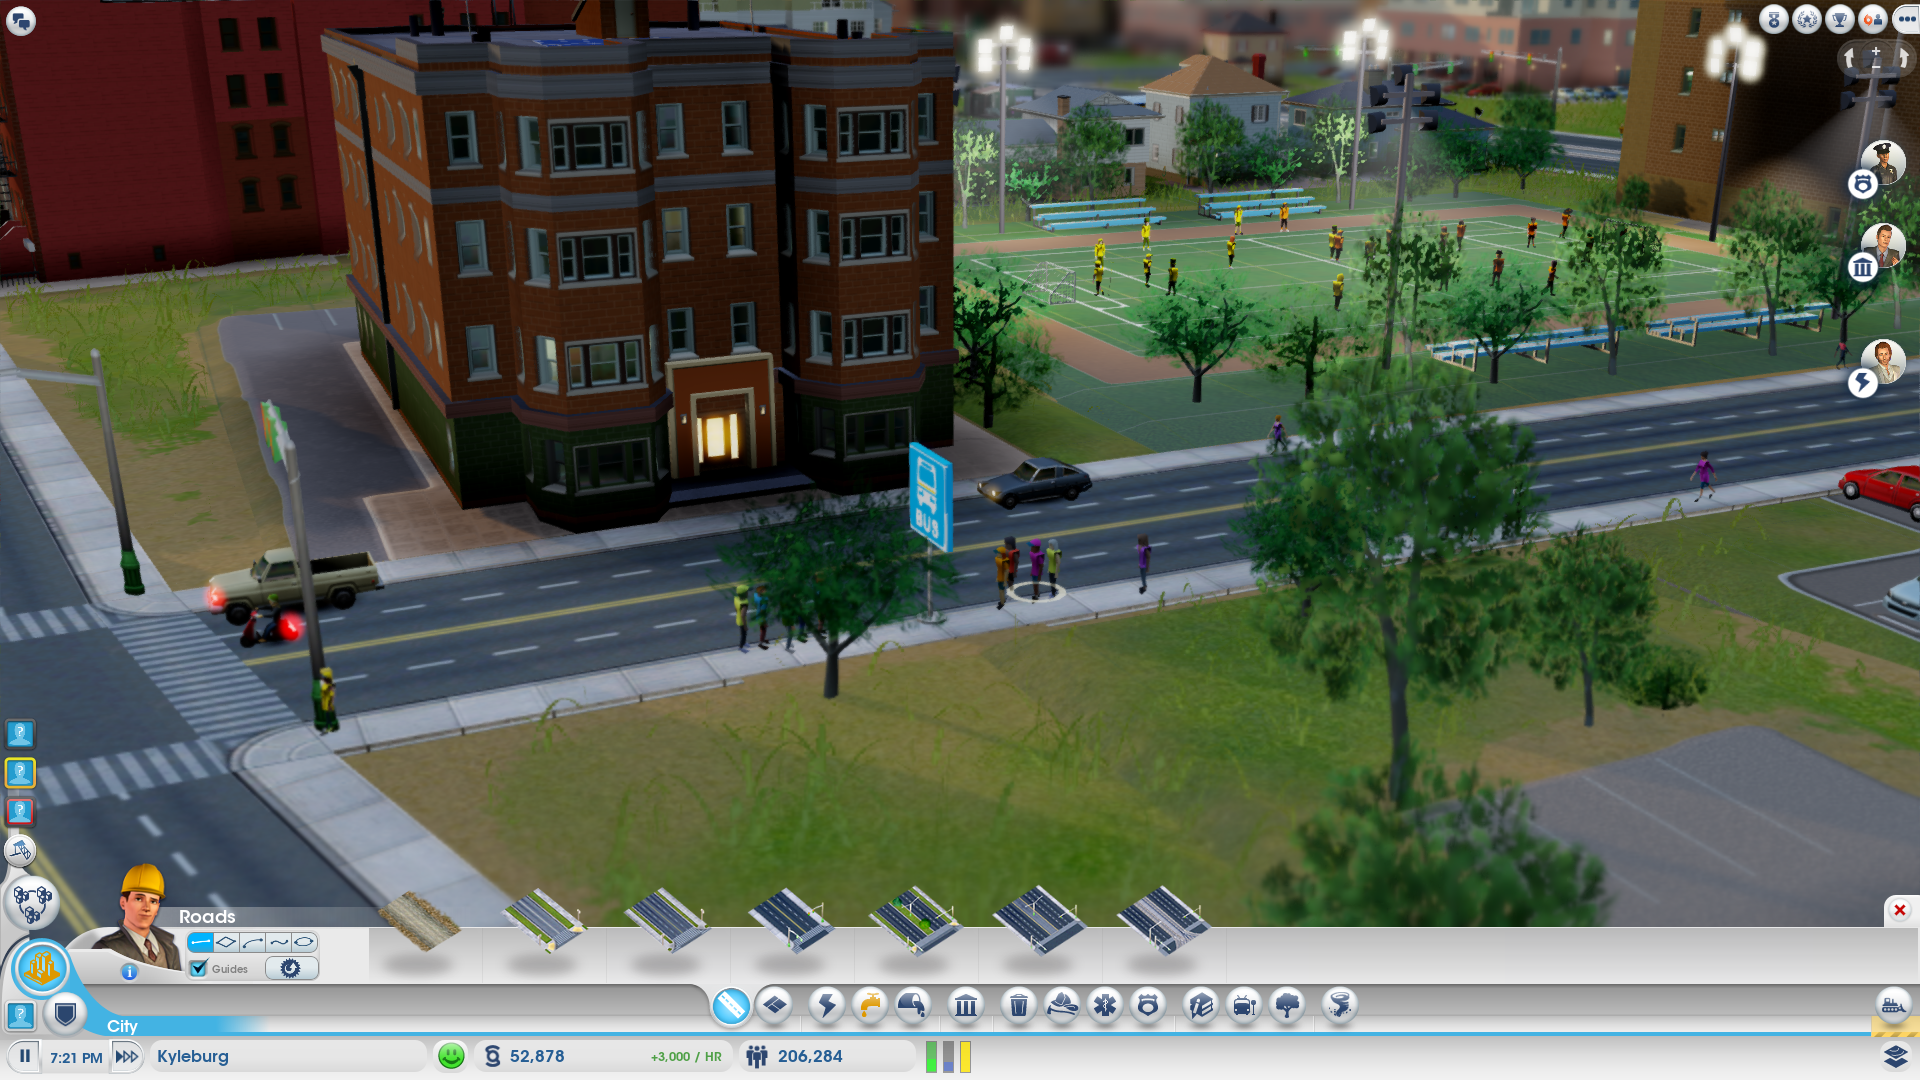 If you want to watch people waiting for the bus and playing soccer in the background, have we got a game for you!